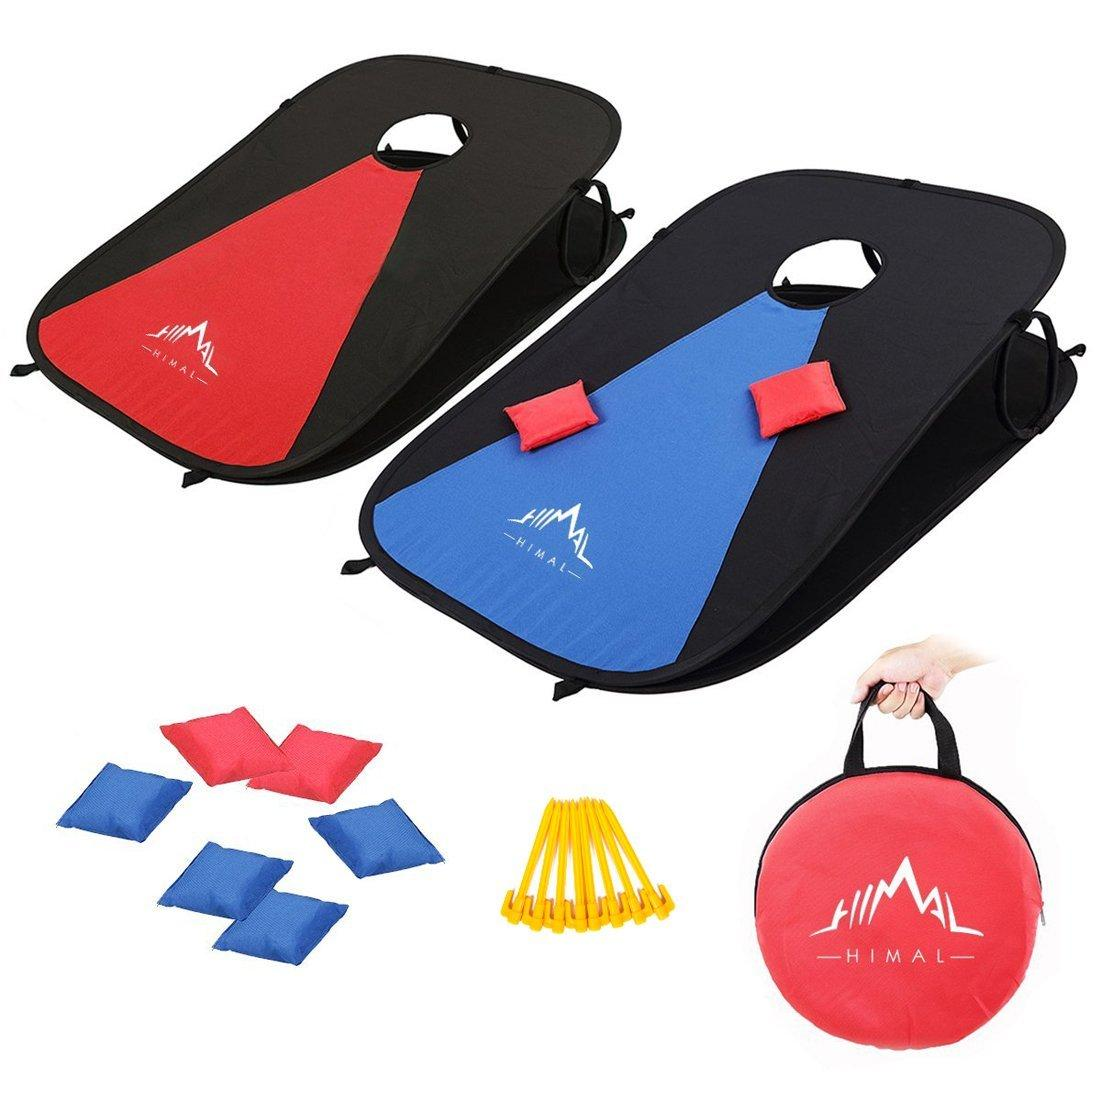 Portable Corn Hole Game Boards Set With 8 Bean Bags Only $26.93 :: WRAL.com